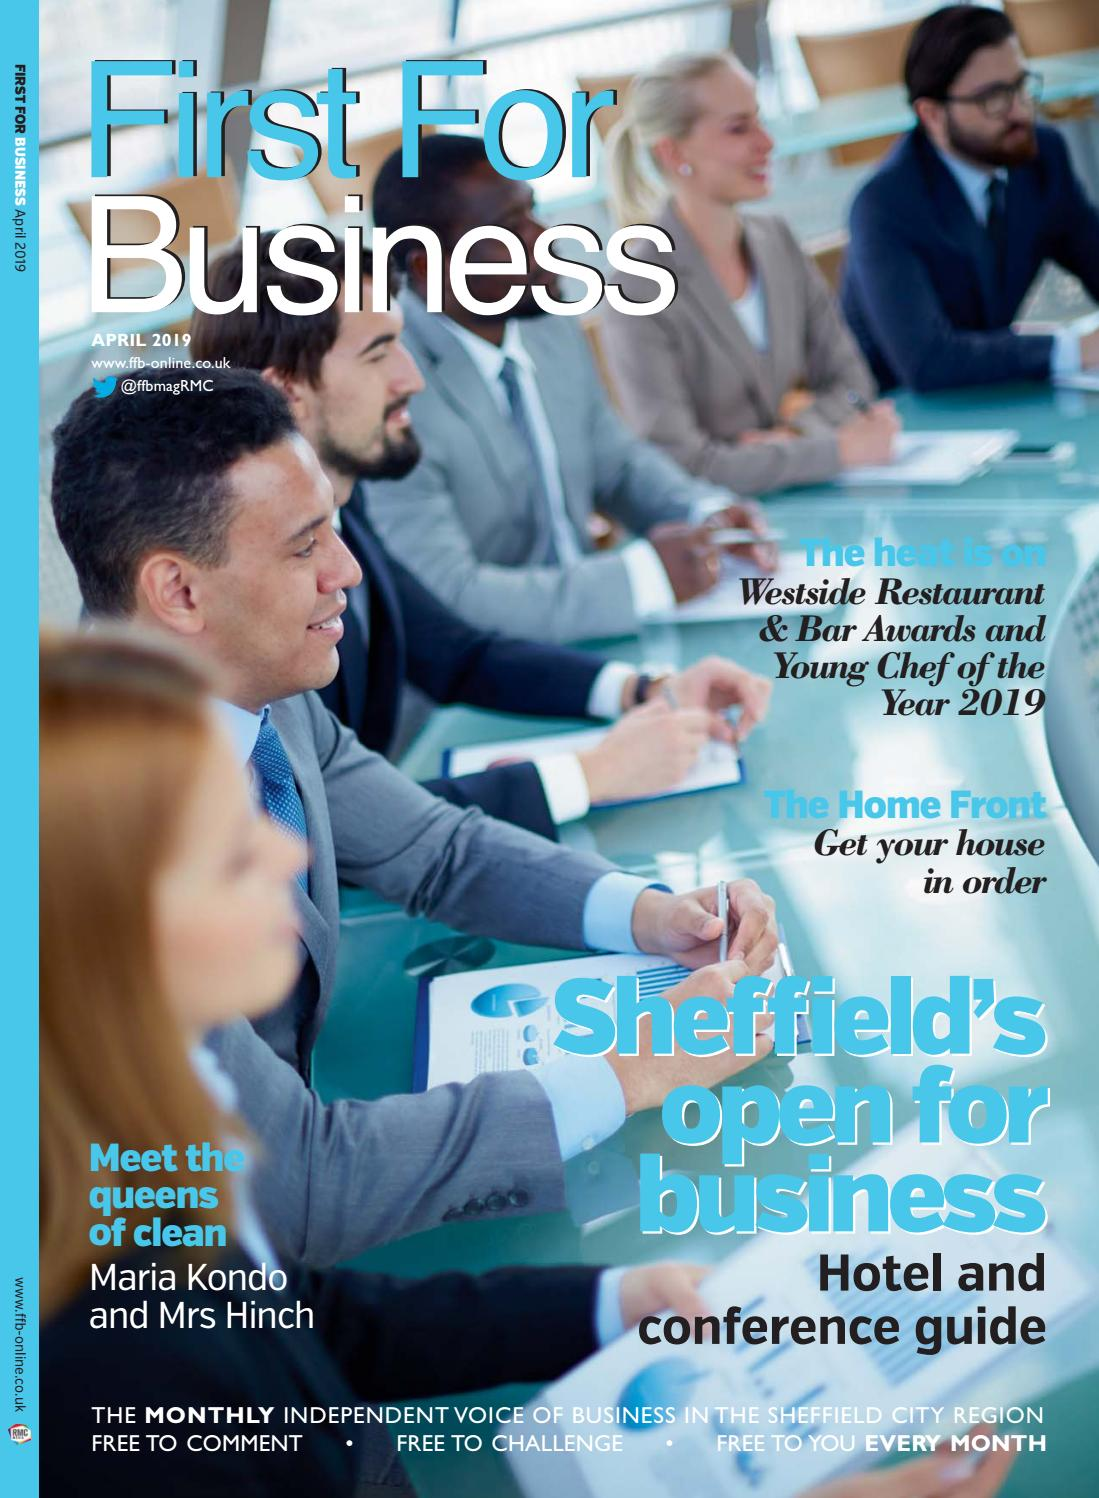 First for Business April 2019